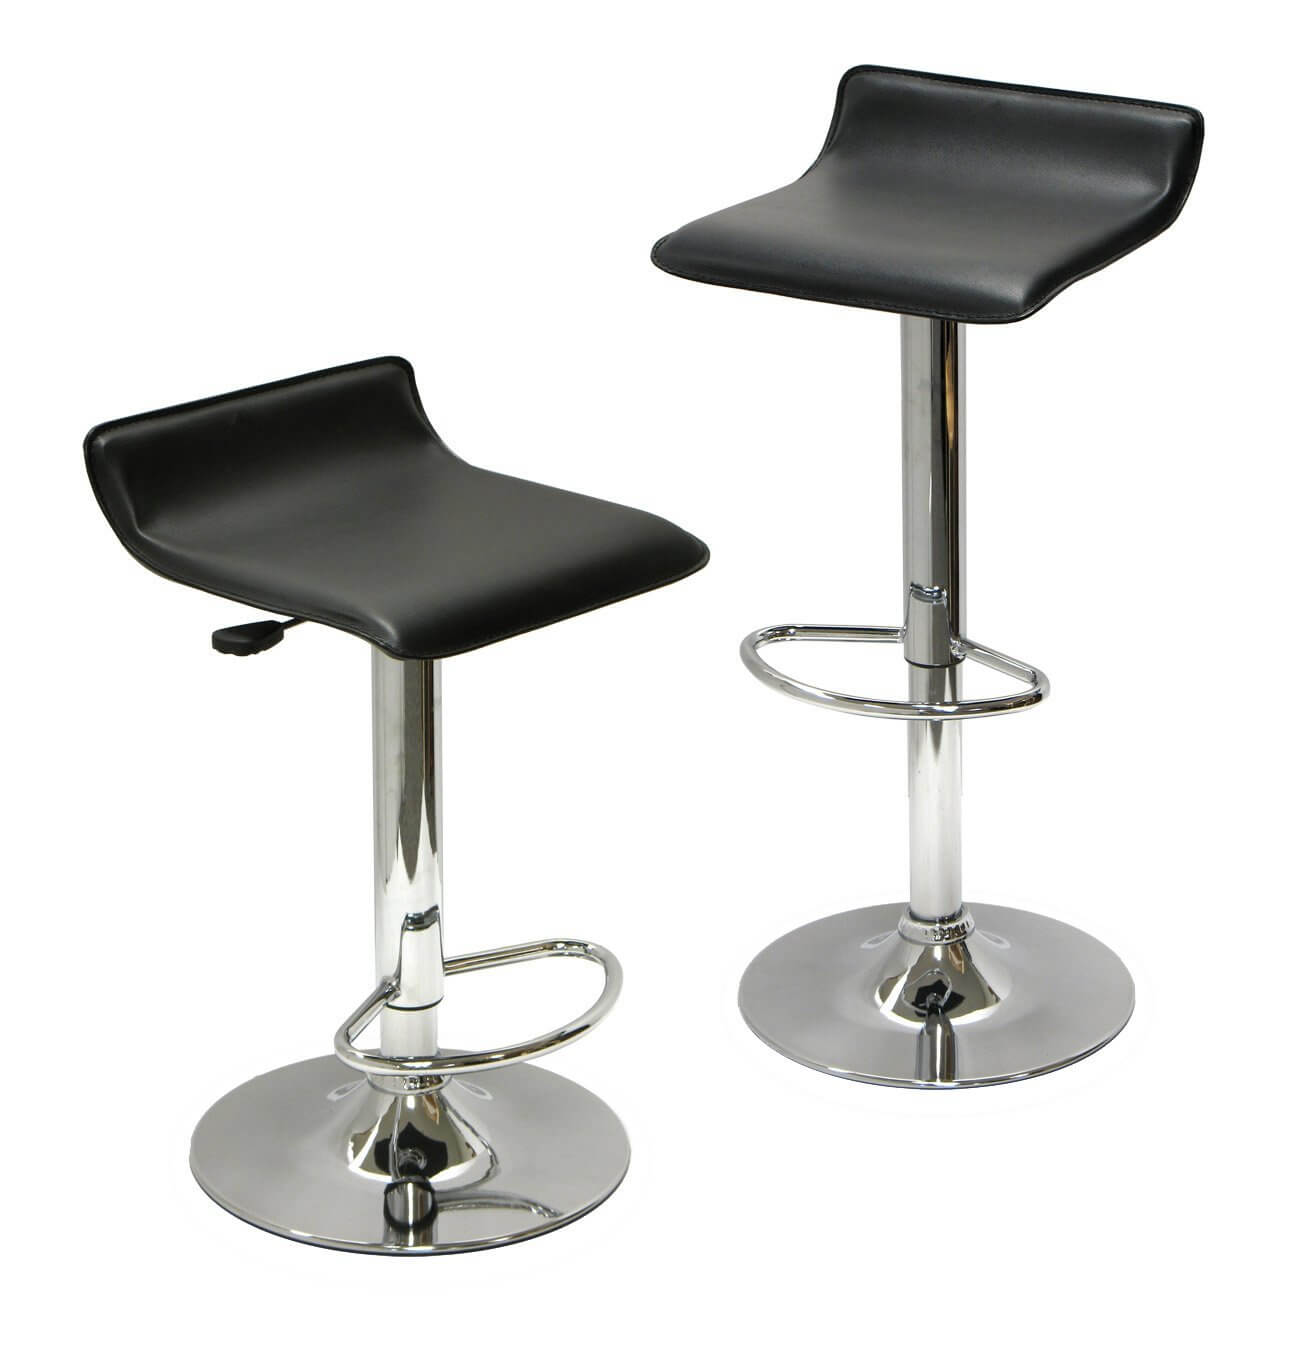 Bar Stools Black, Set of 2